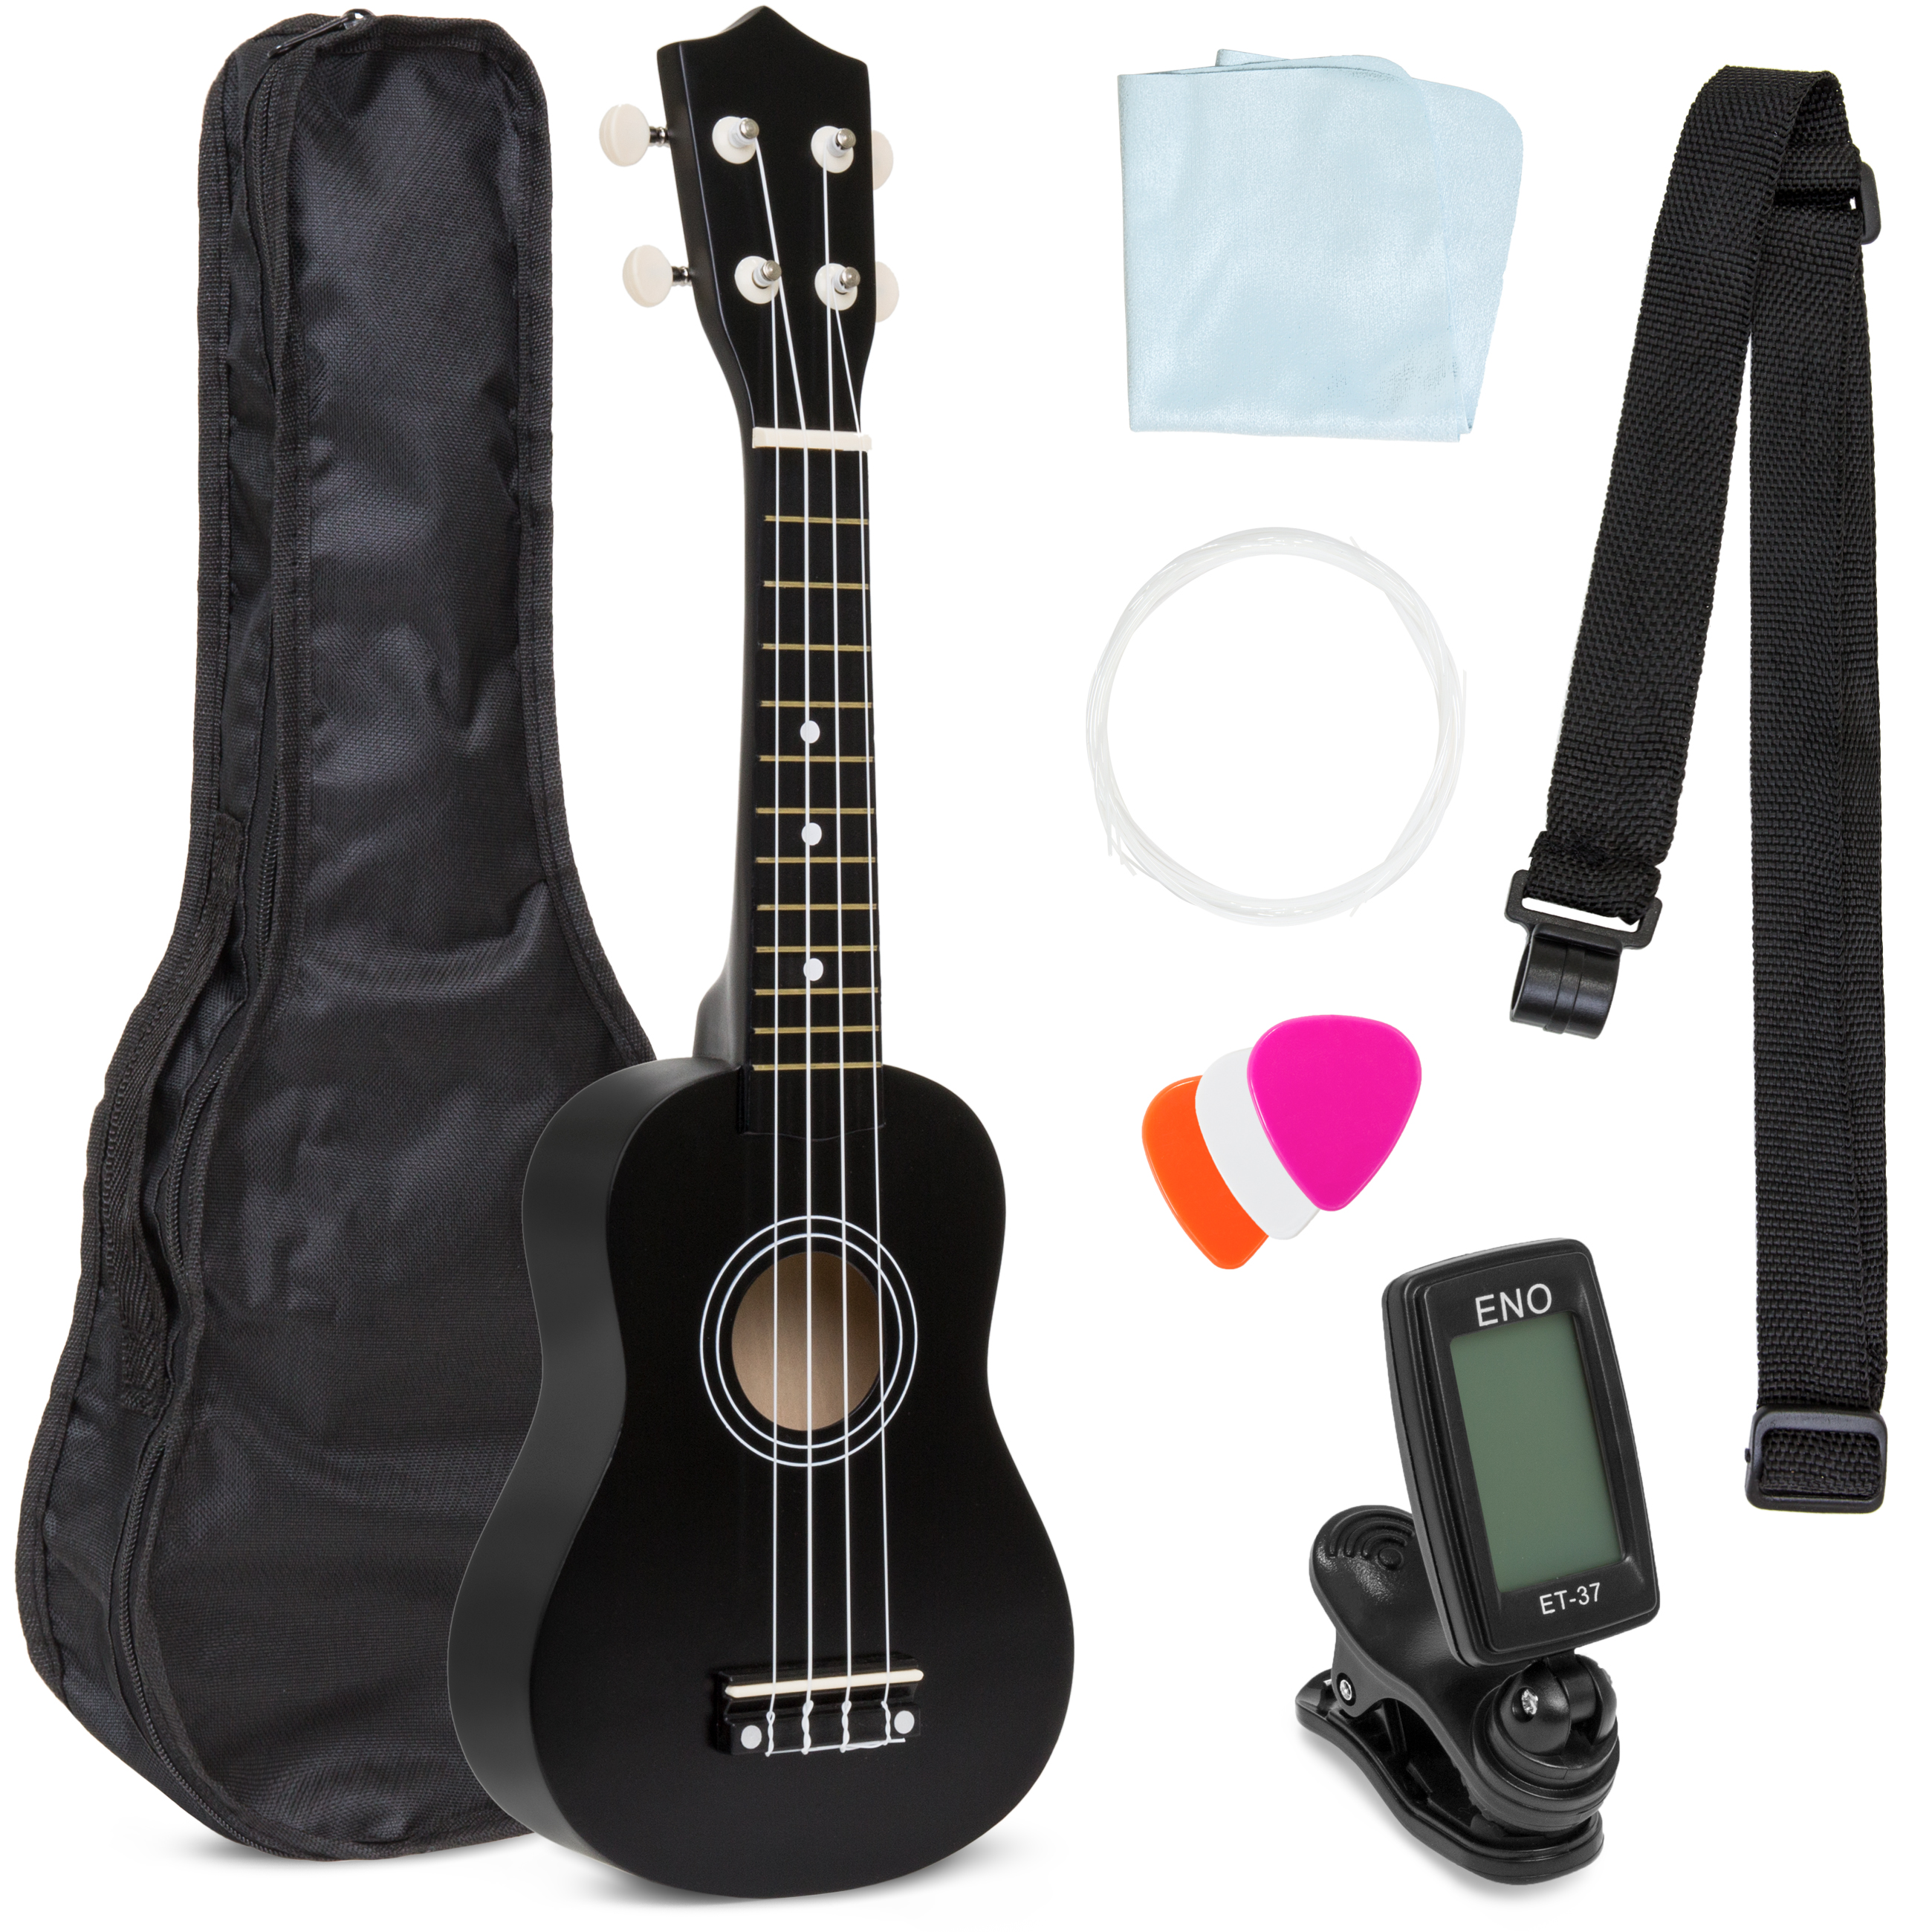 Best Choice Products Basswood Ukulele Starter Kit w/ Waterproof Case, Strap, Picks, Cloth, Clip-On Tuner, Extra String - Black